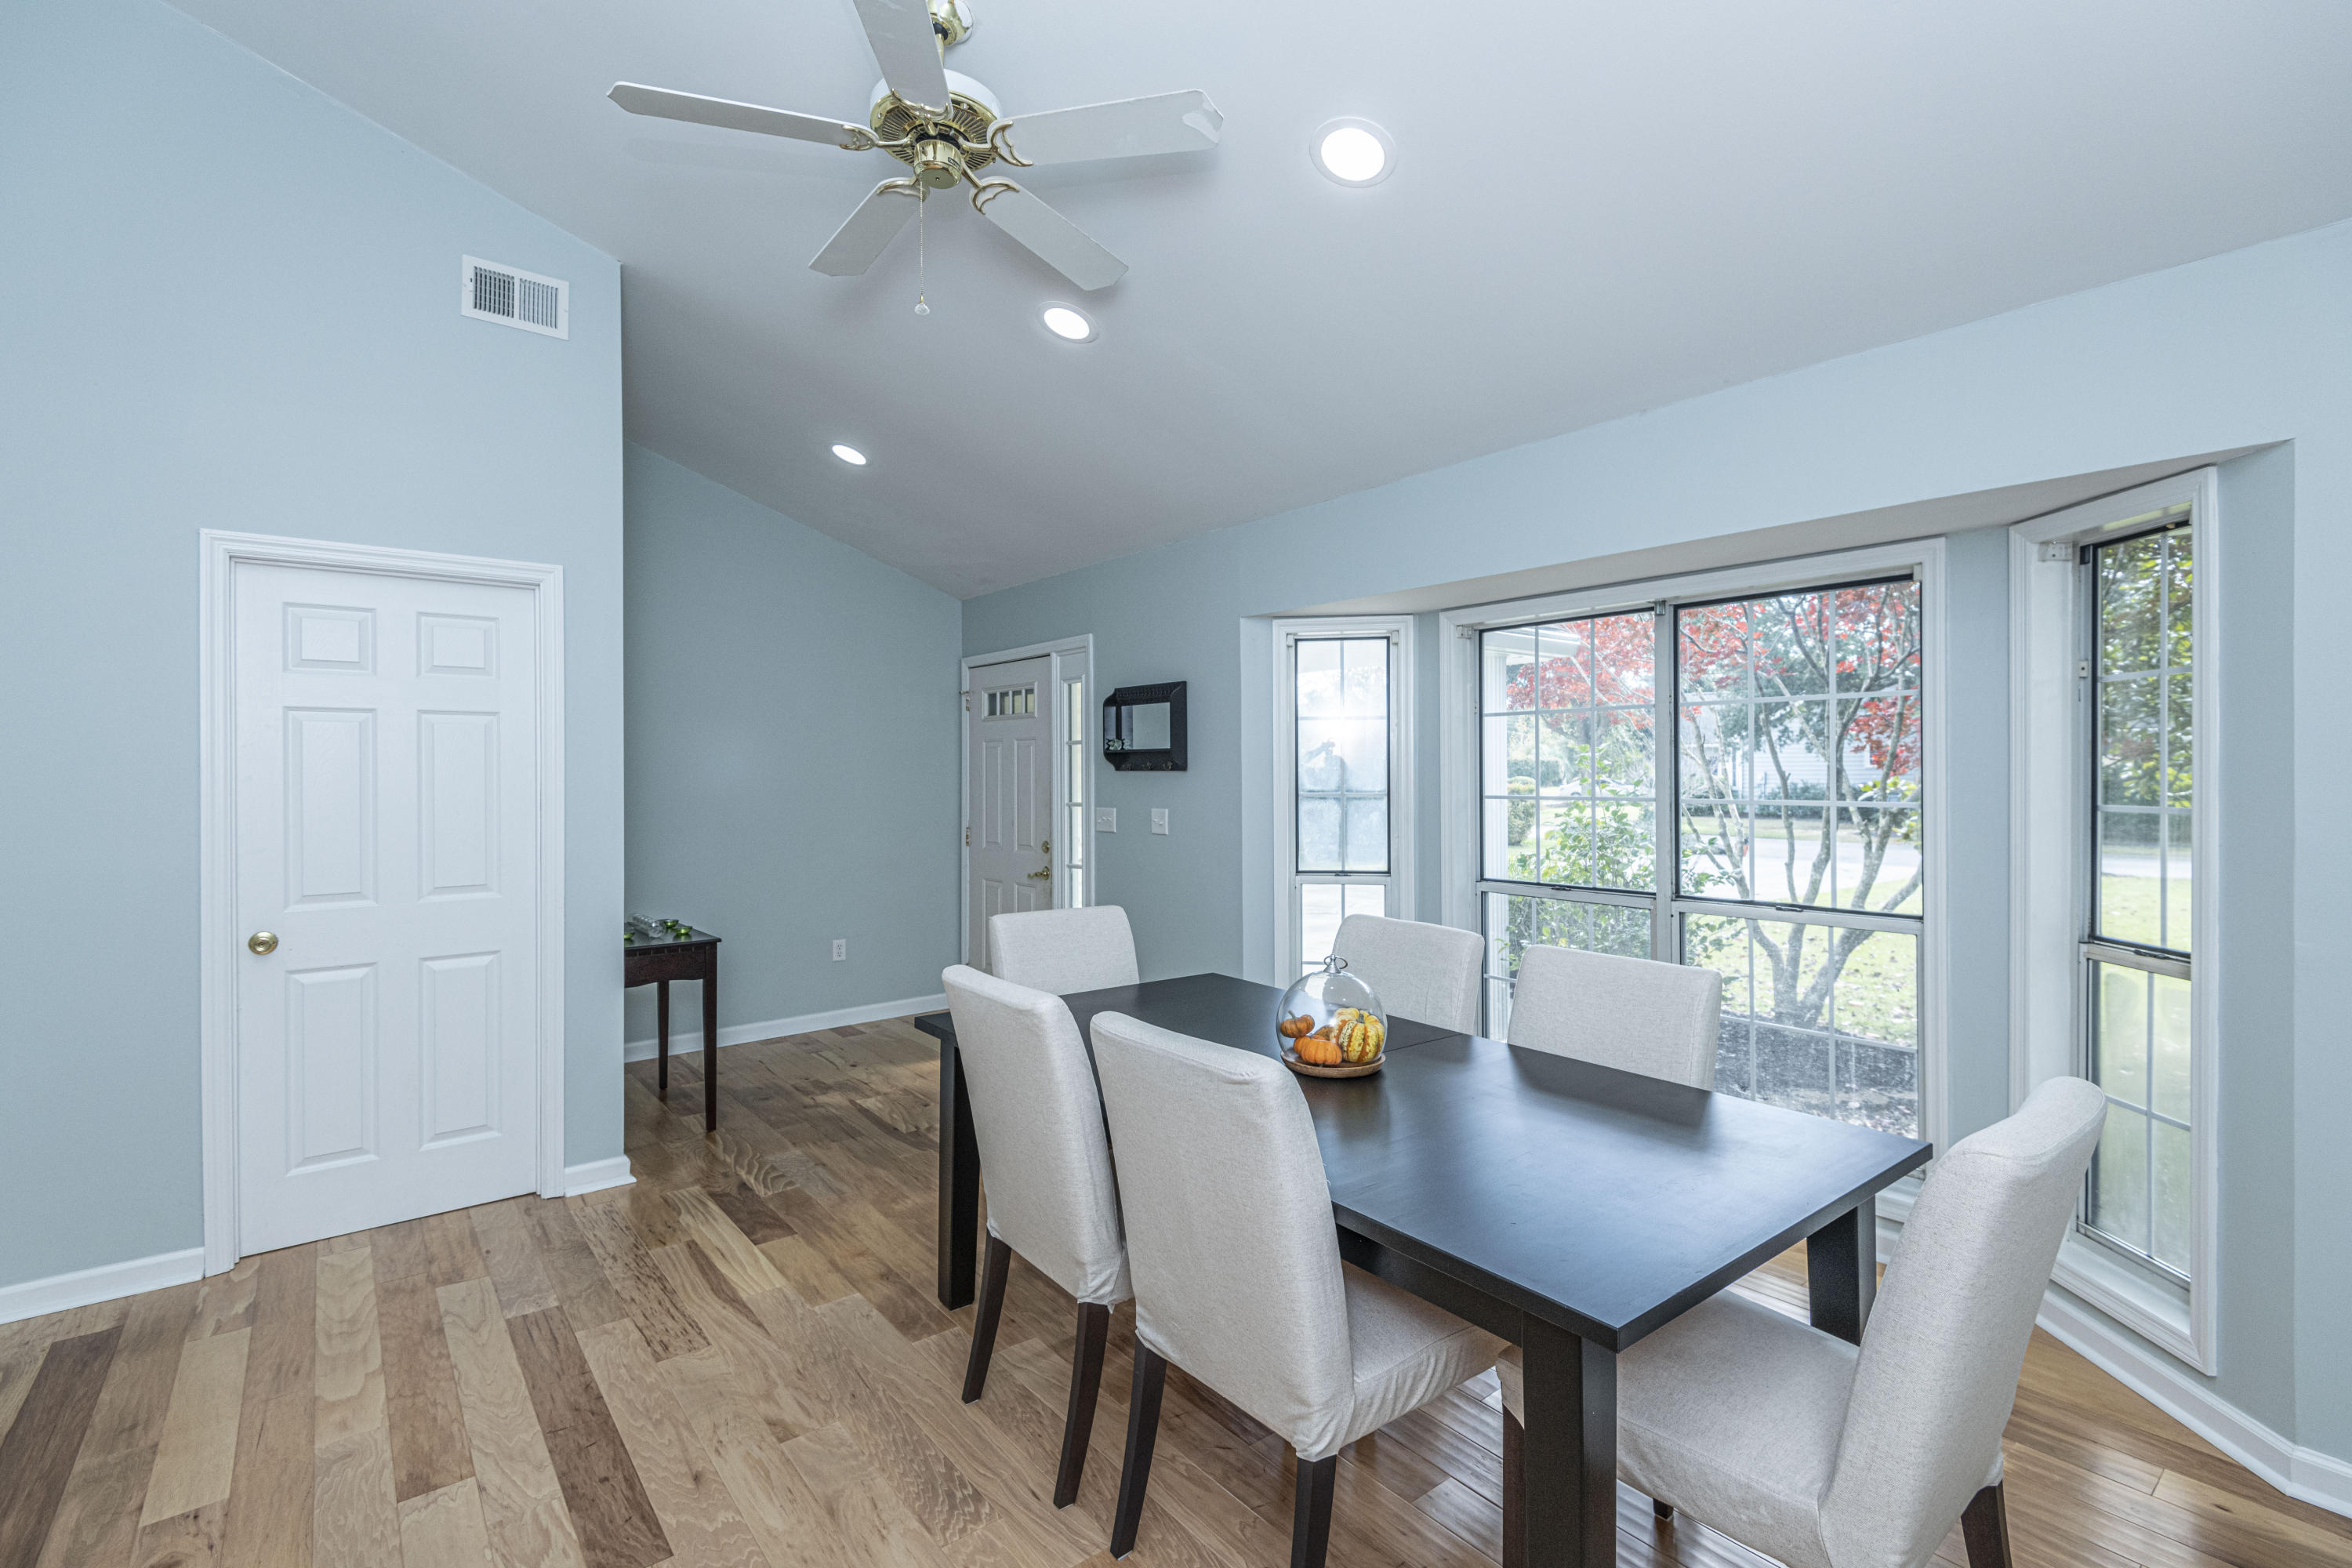 Coopers Pointe Homes For Sale - 1582 Hatteras Sound, Mount Pleasant, SC - 15